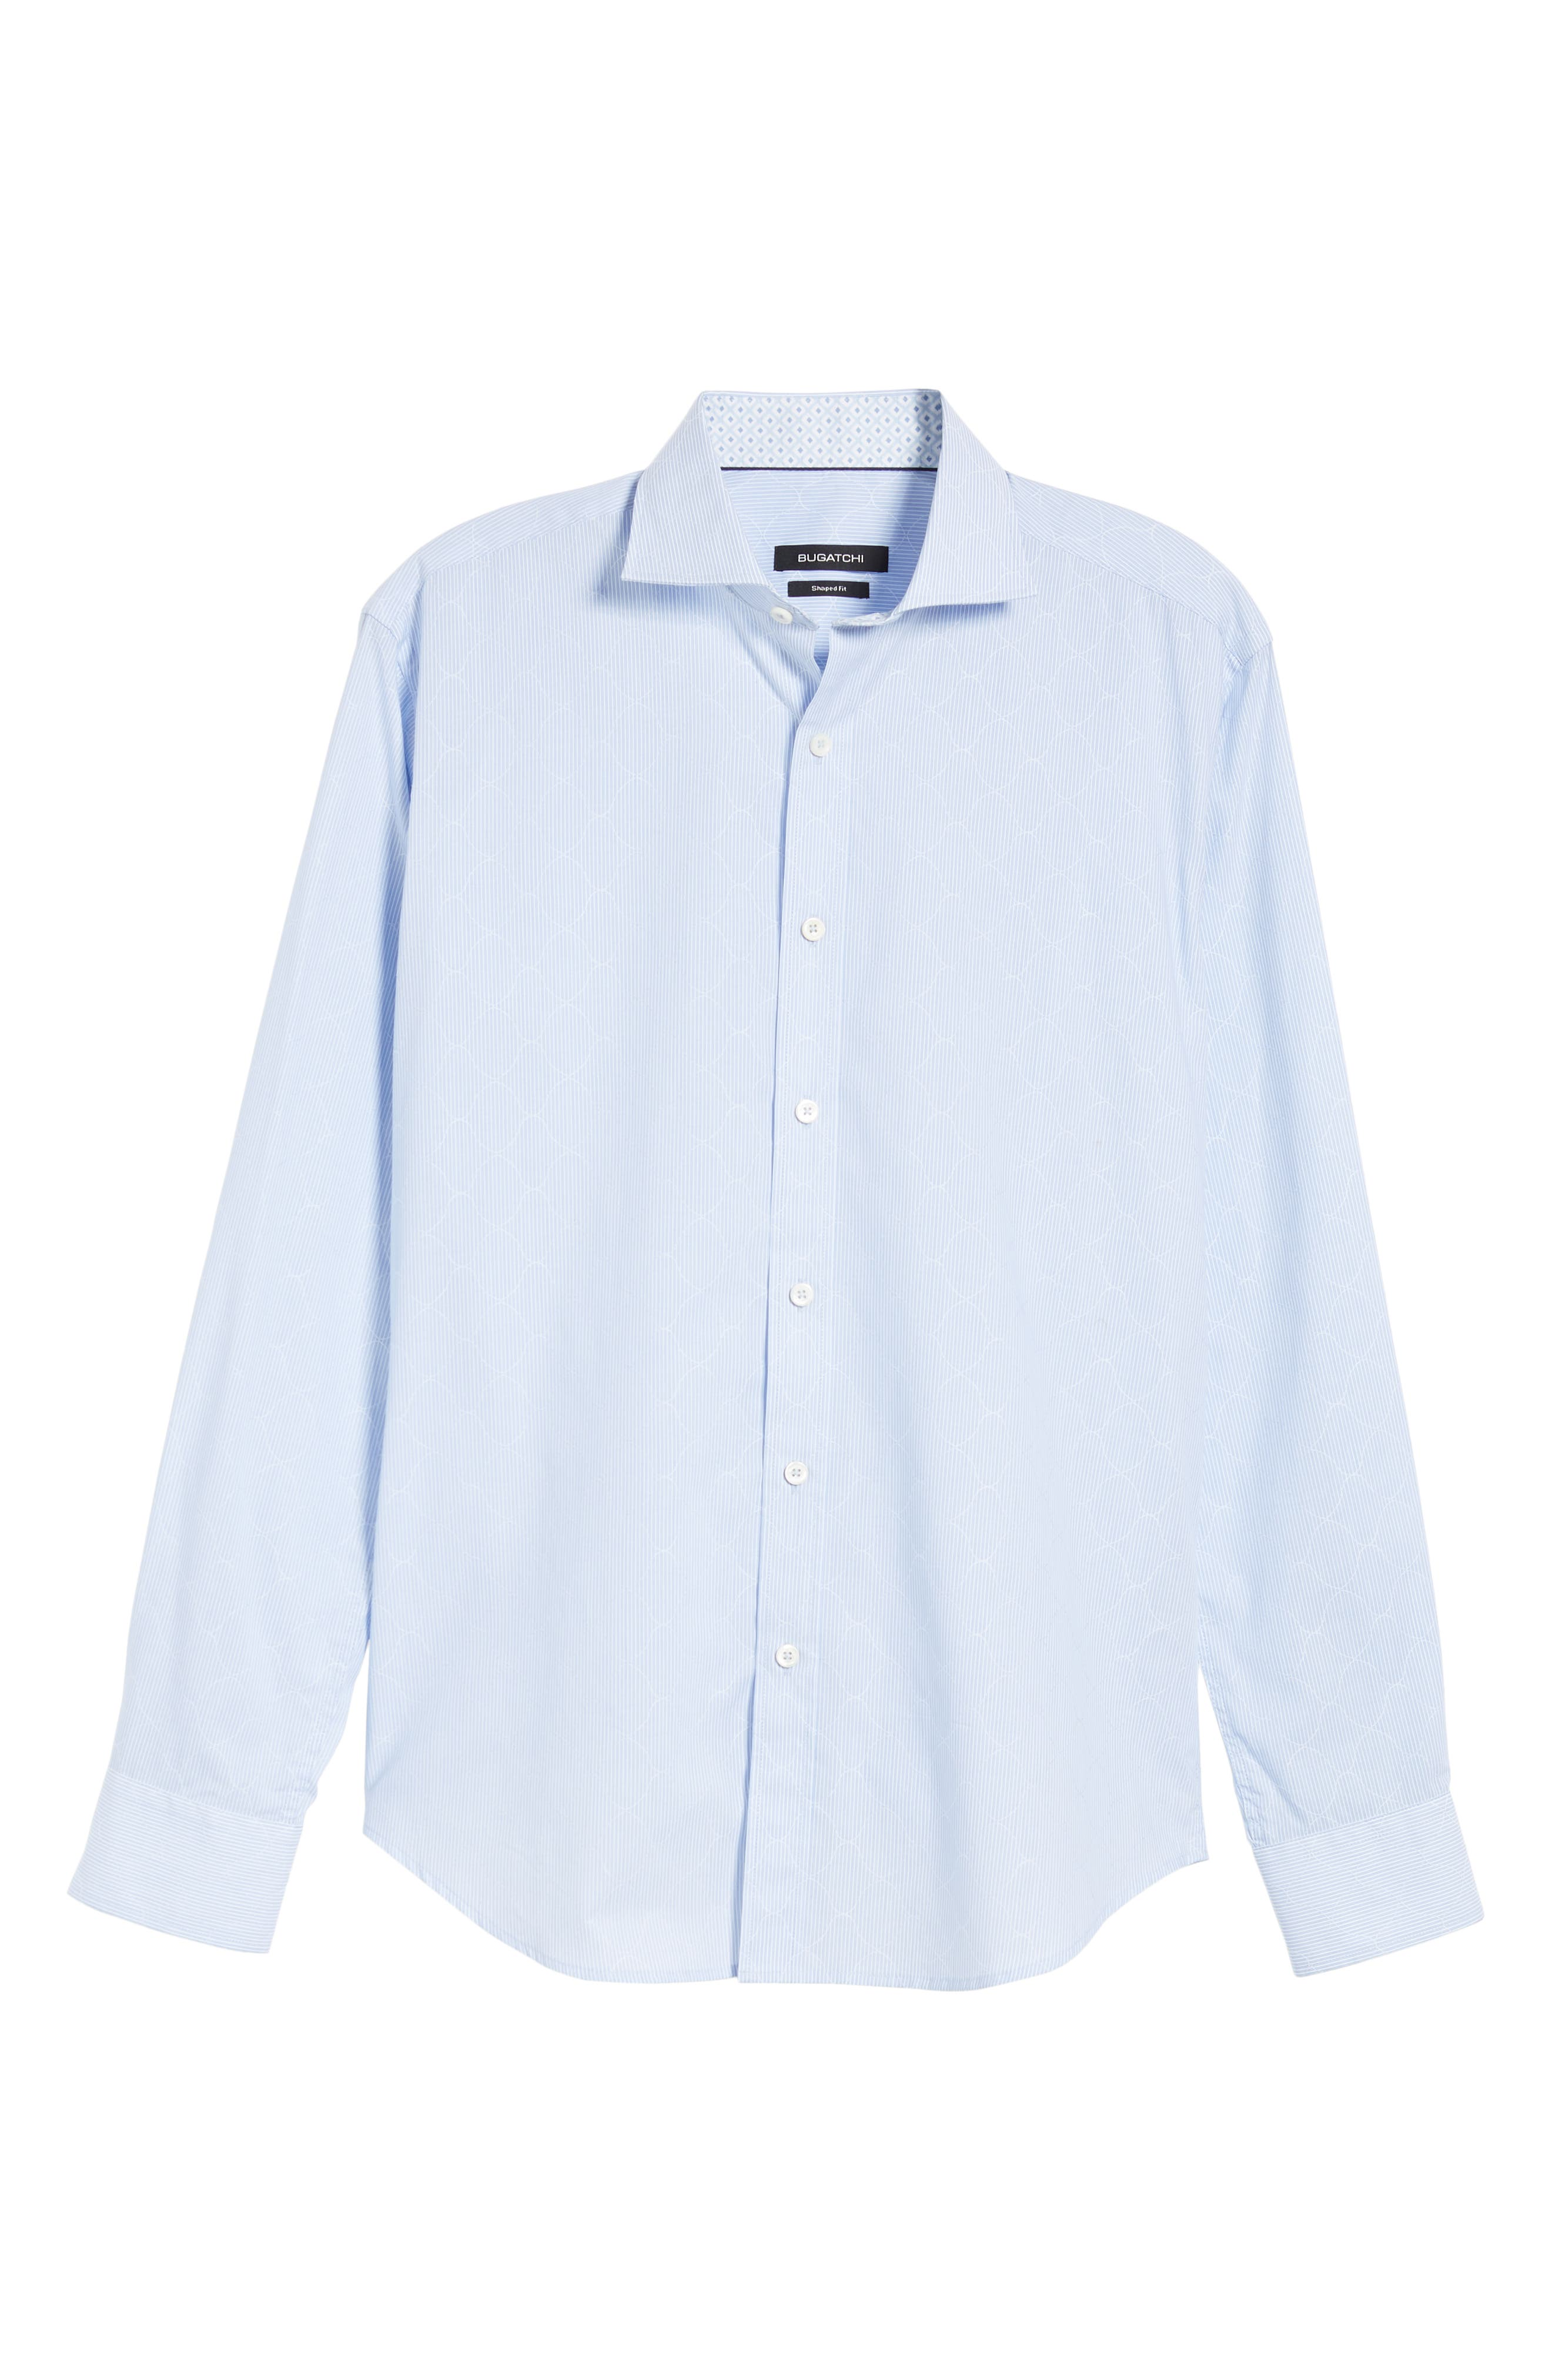 BUGATCHI, Shaped Fit Stripe Sport Shirt, Alternate thumbnail 5, color, SKY